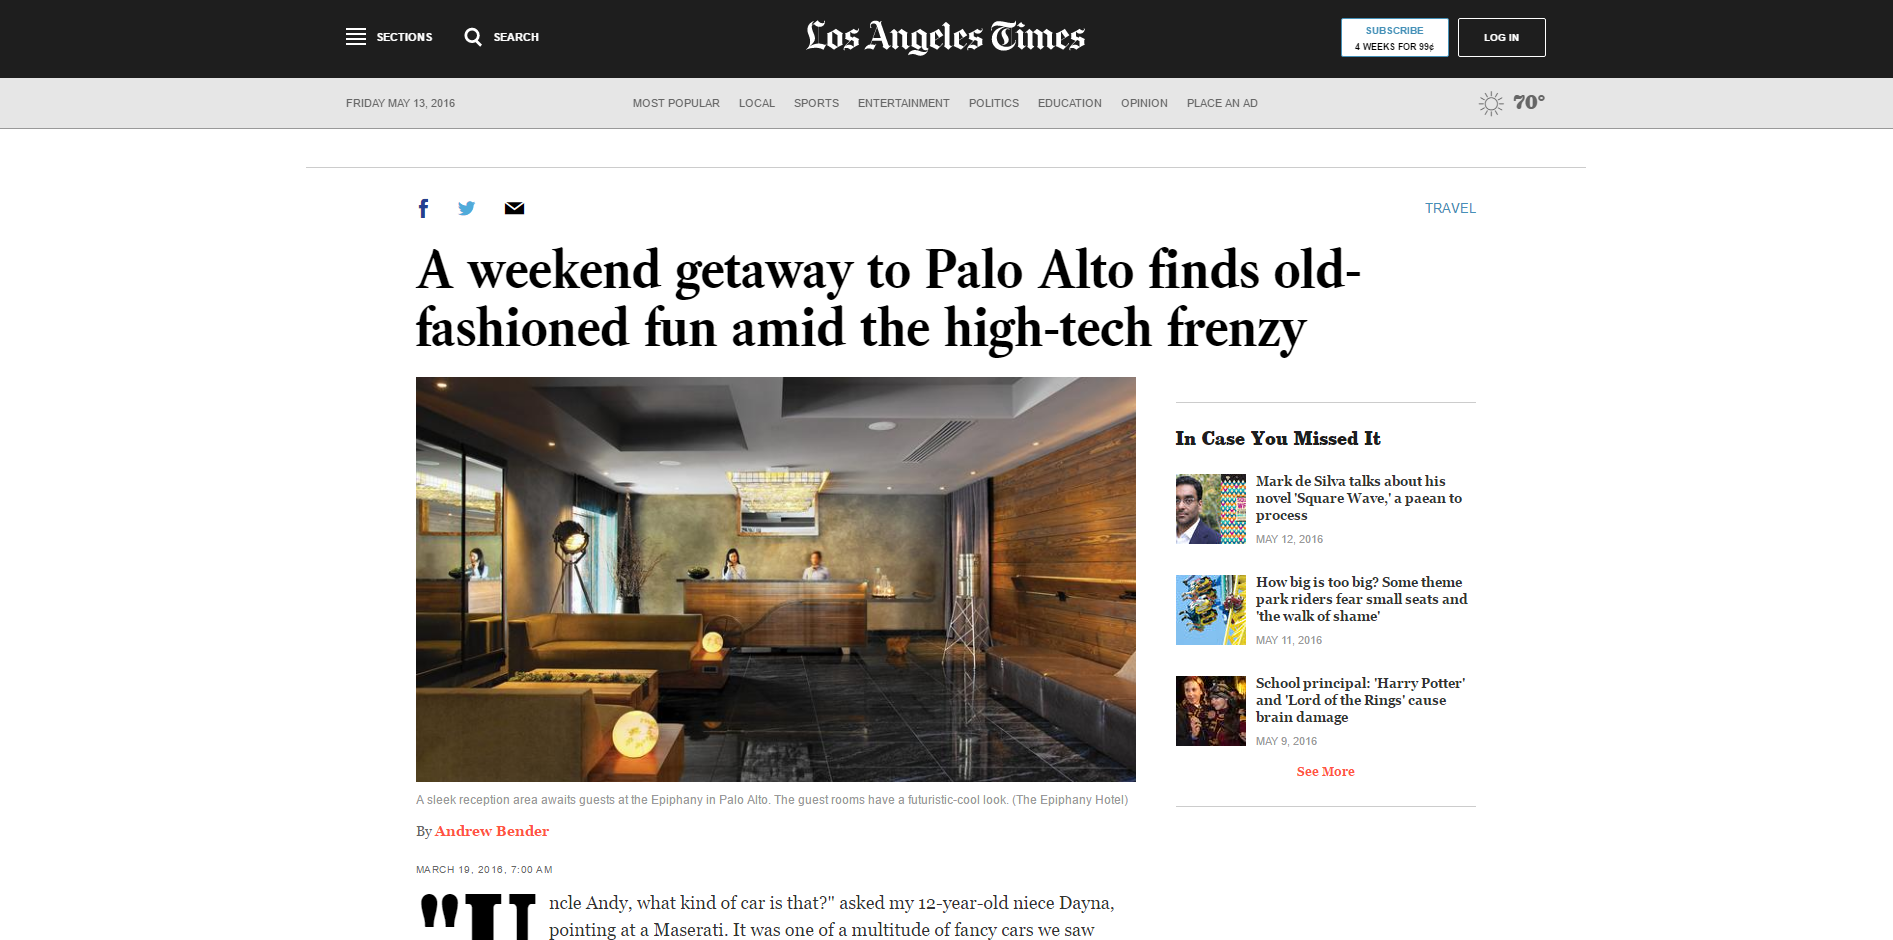 A weekend getaway to Palo Alto finds old-fashioned fun amid the high-tech frenzy